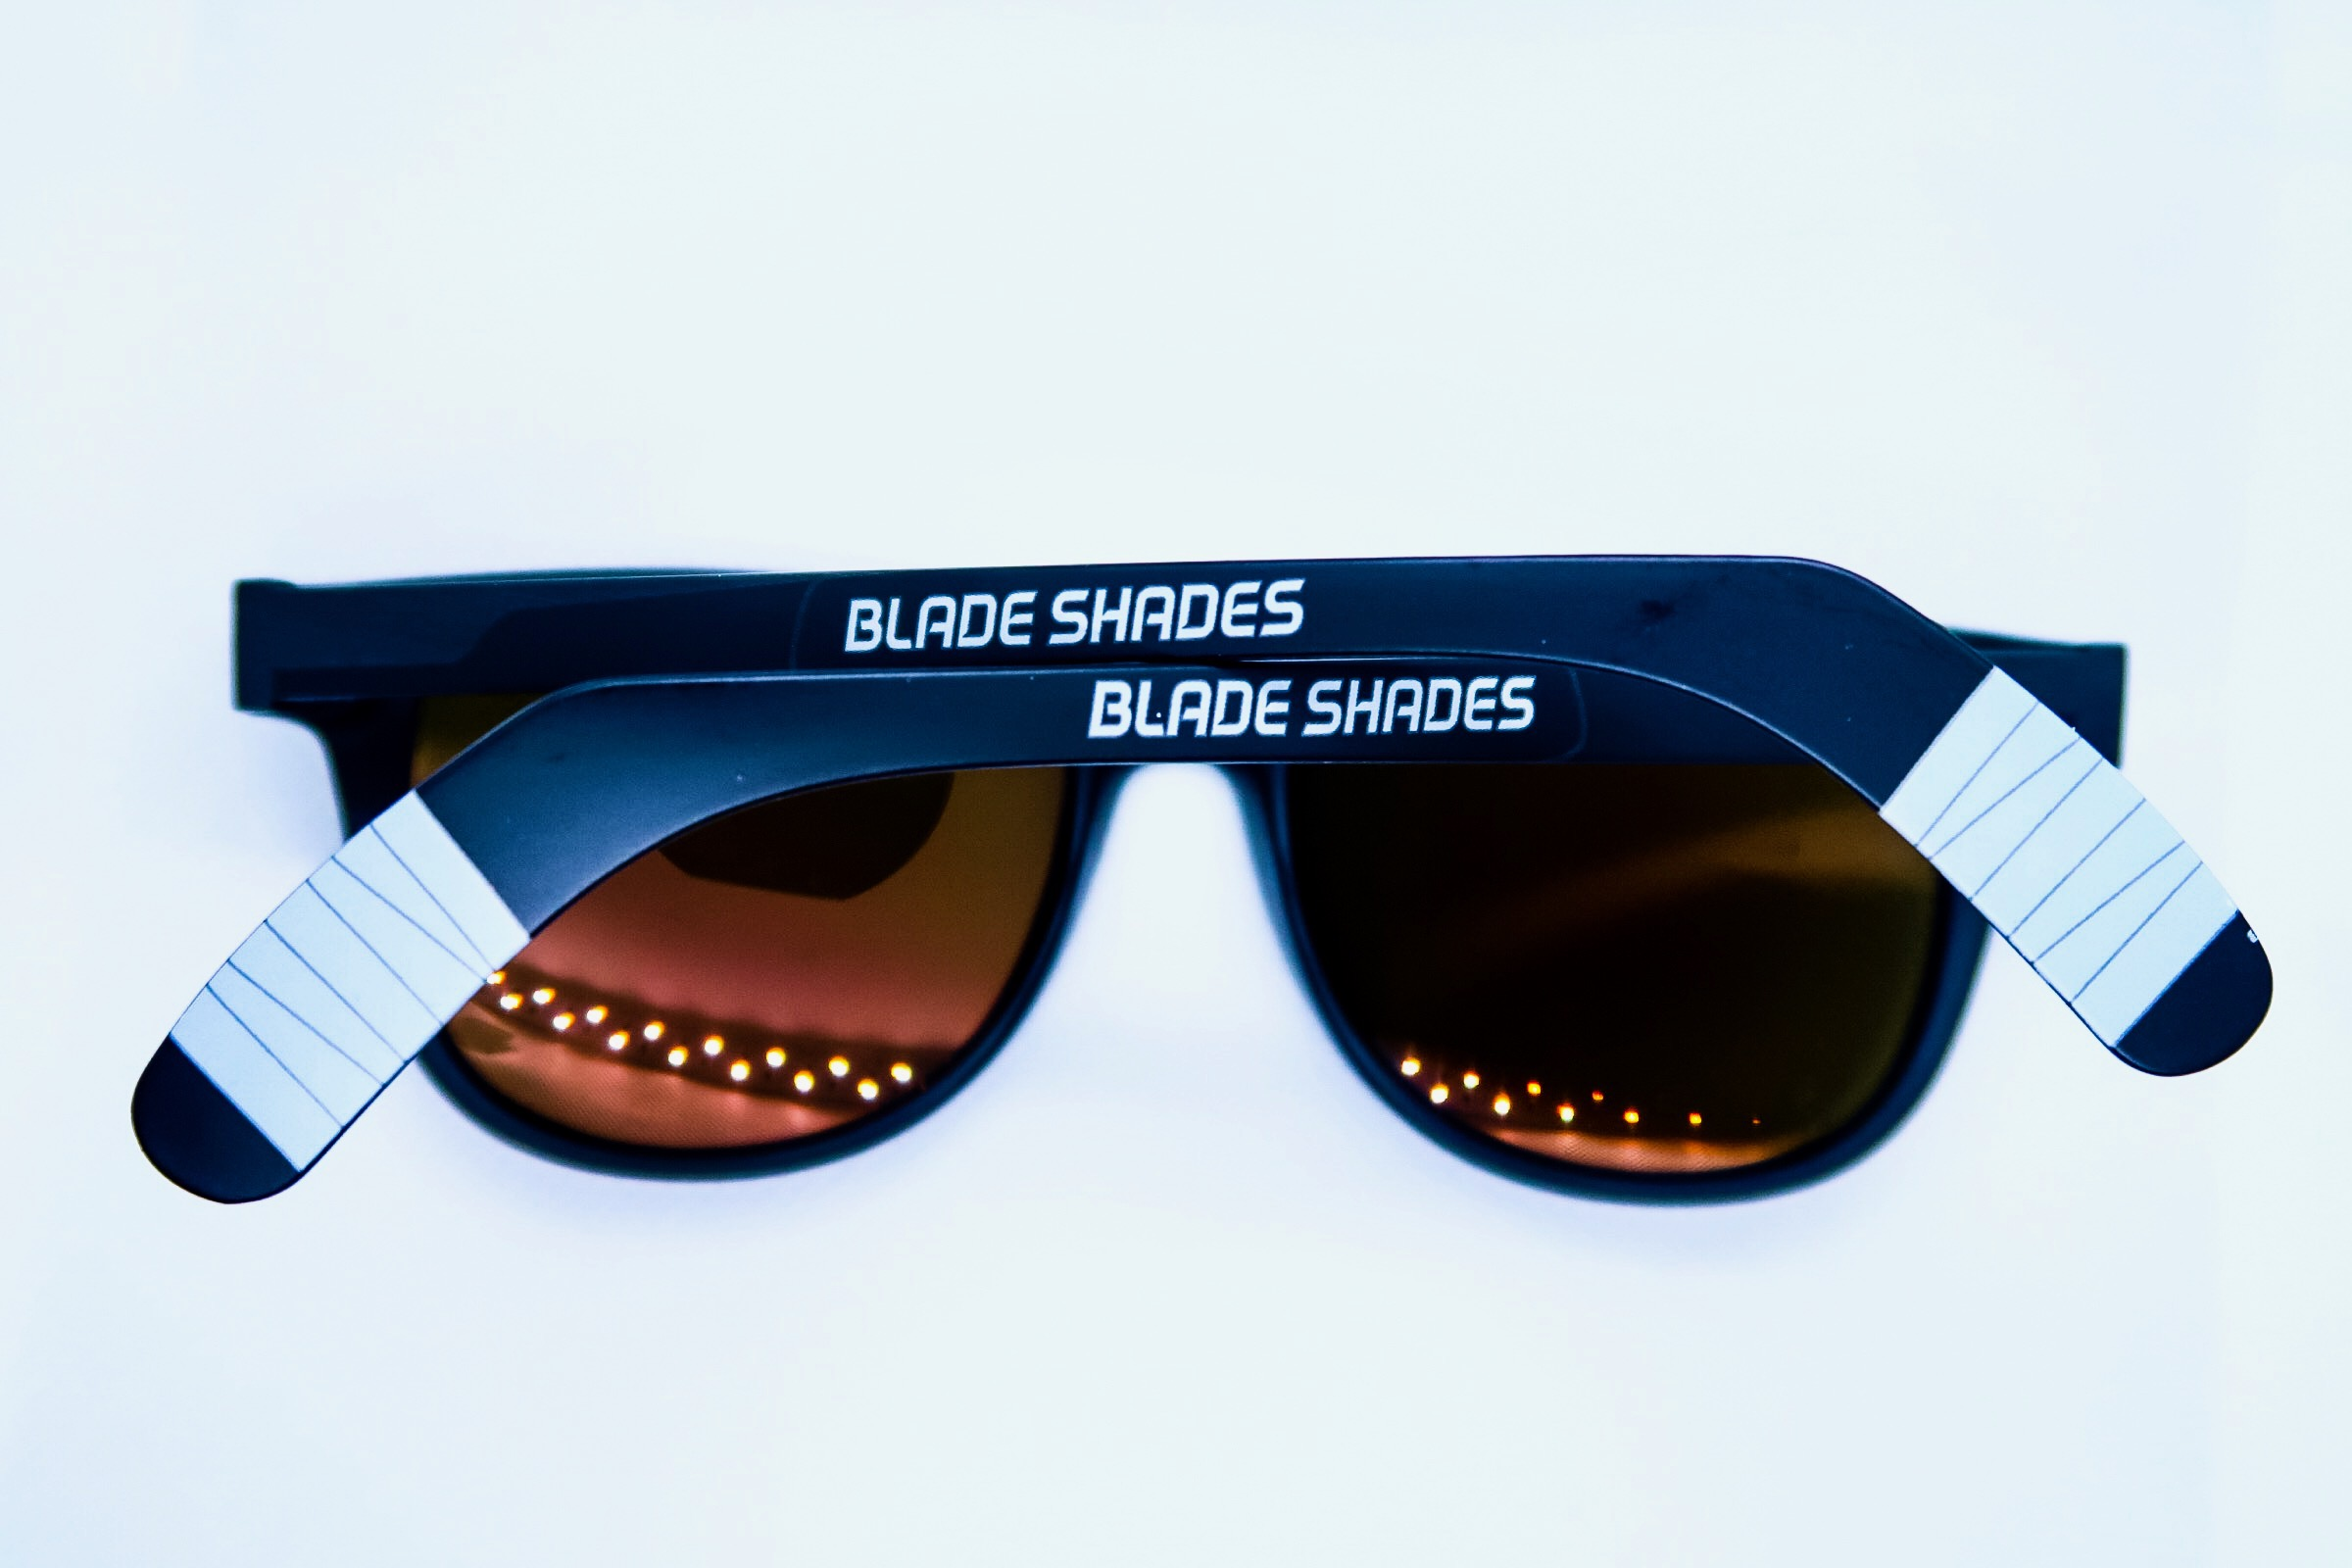 """Buy 2 Get 1 Free - Use """"DADDYDAY"""" To get a free pair of Blade Shades"""